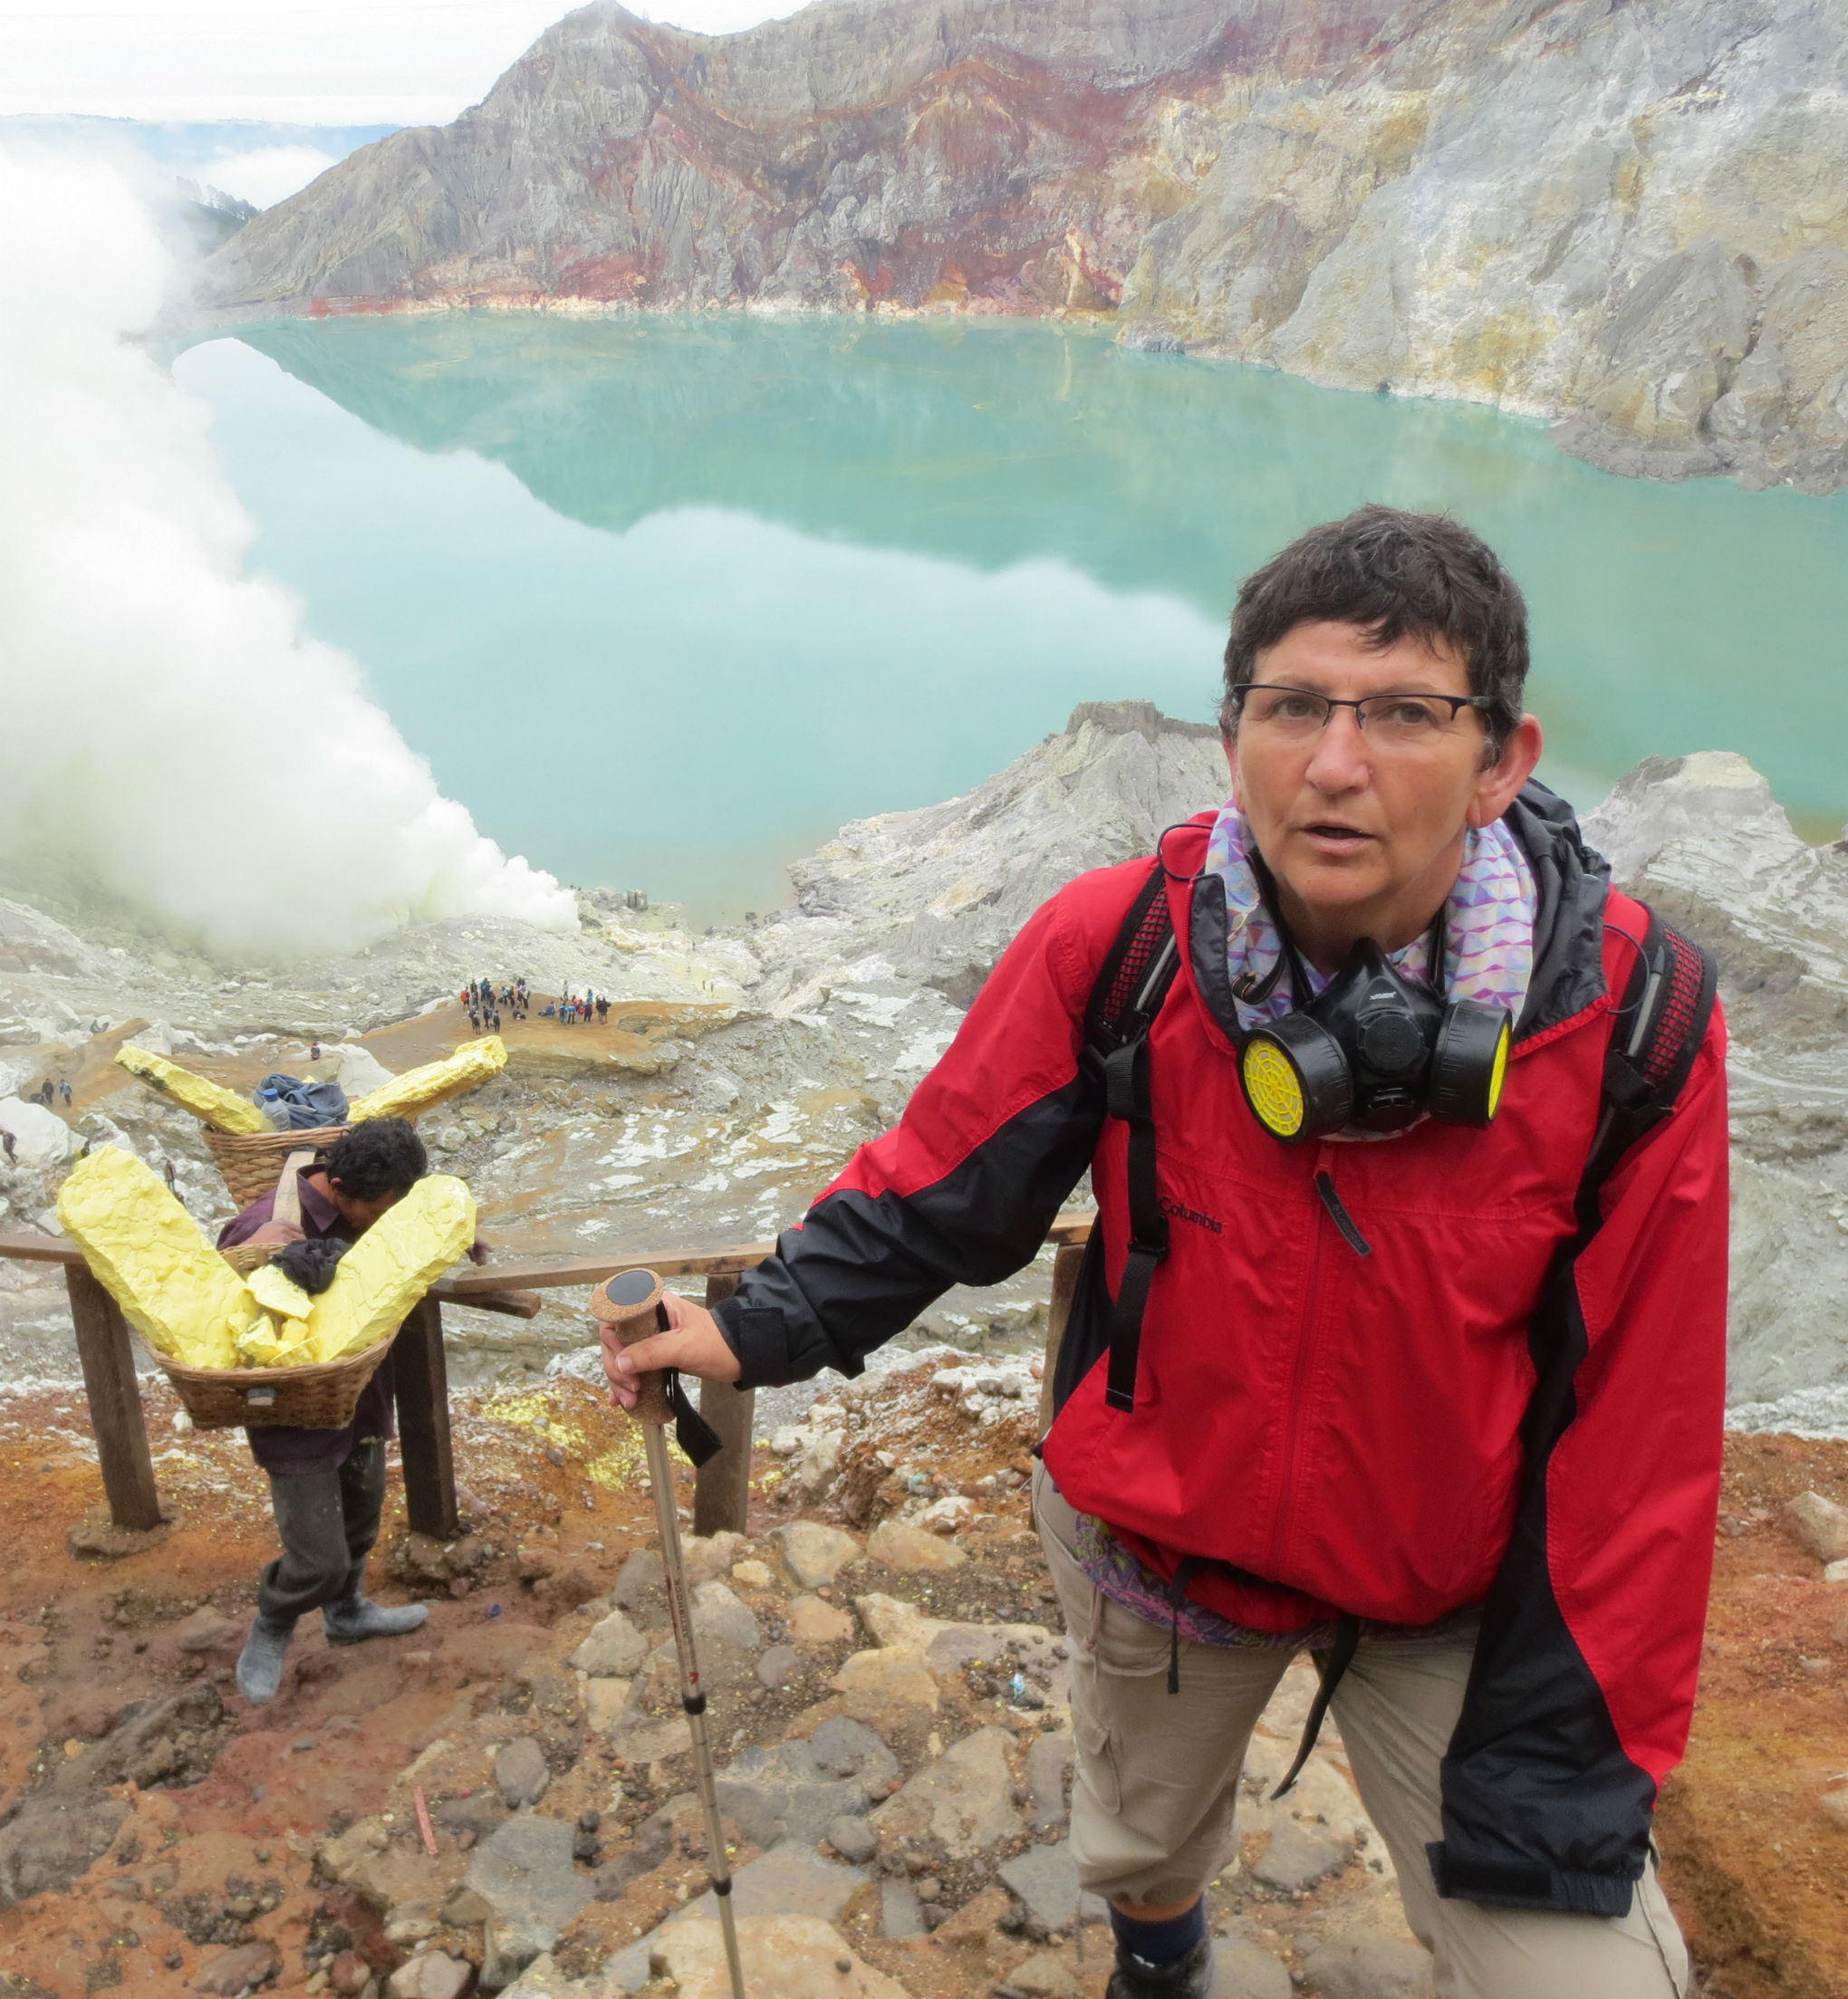 Ascending the Ijen crater